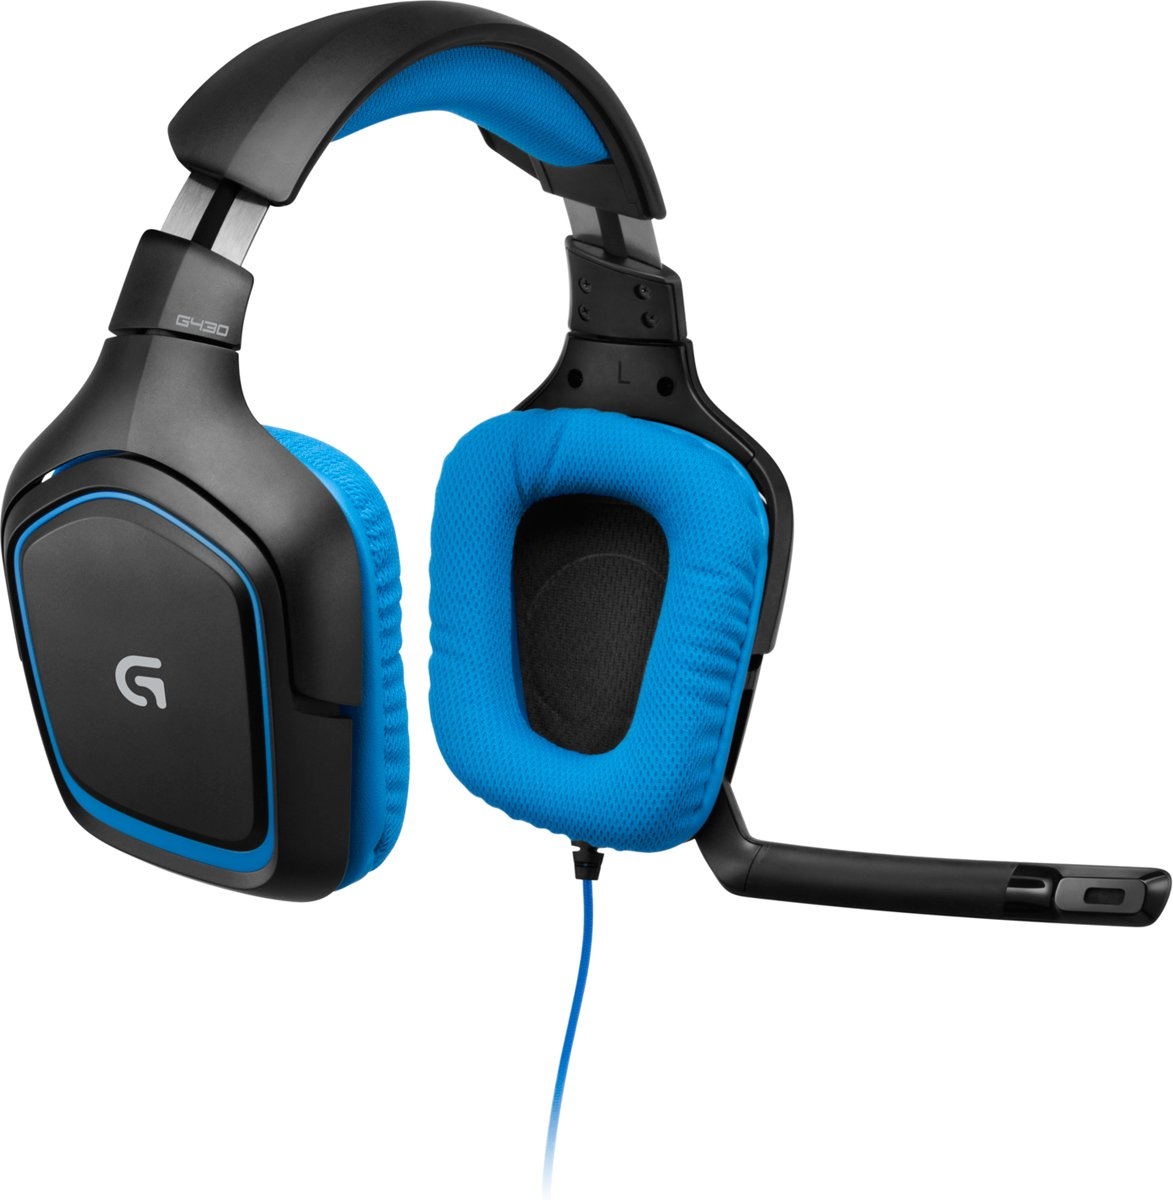 Logitech G430 - Prodigy Gaming Headset - Windows + PS4 voor €37